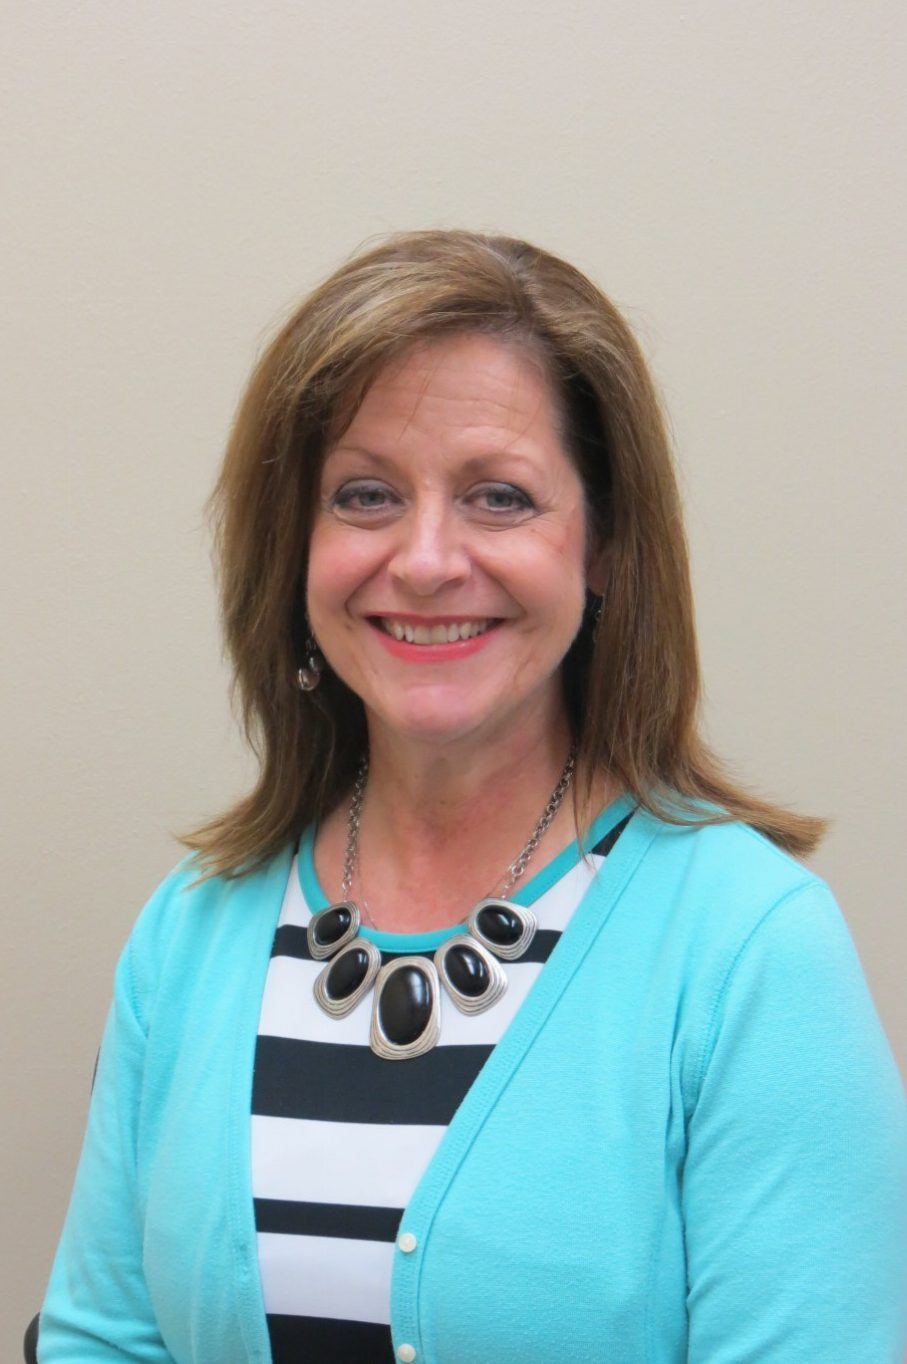 Linda Sloan, Career Tech/Online Learning Content Specialist